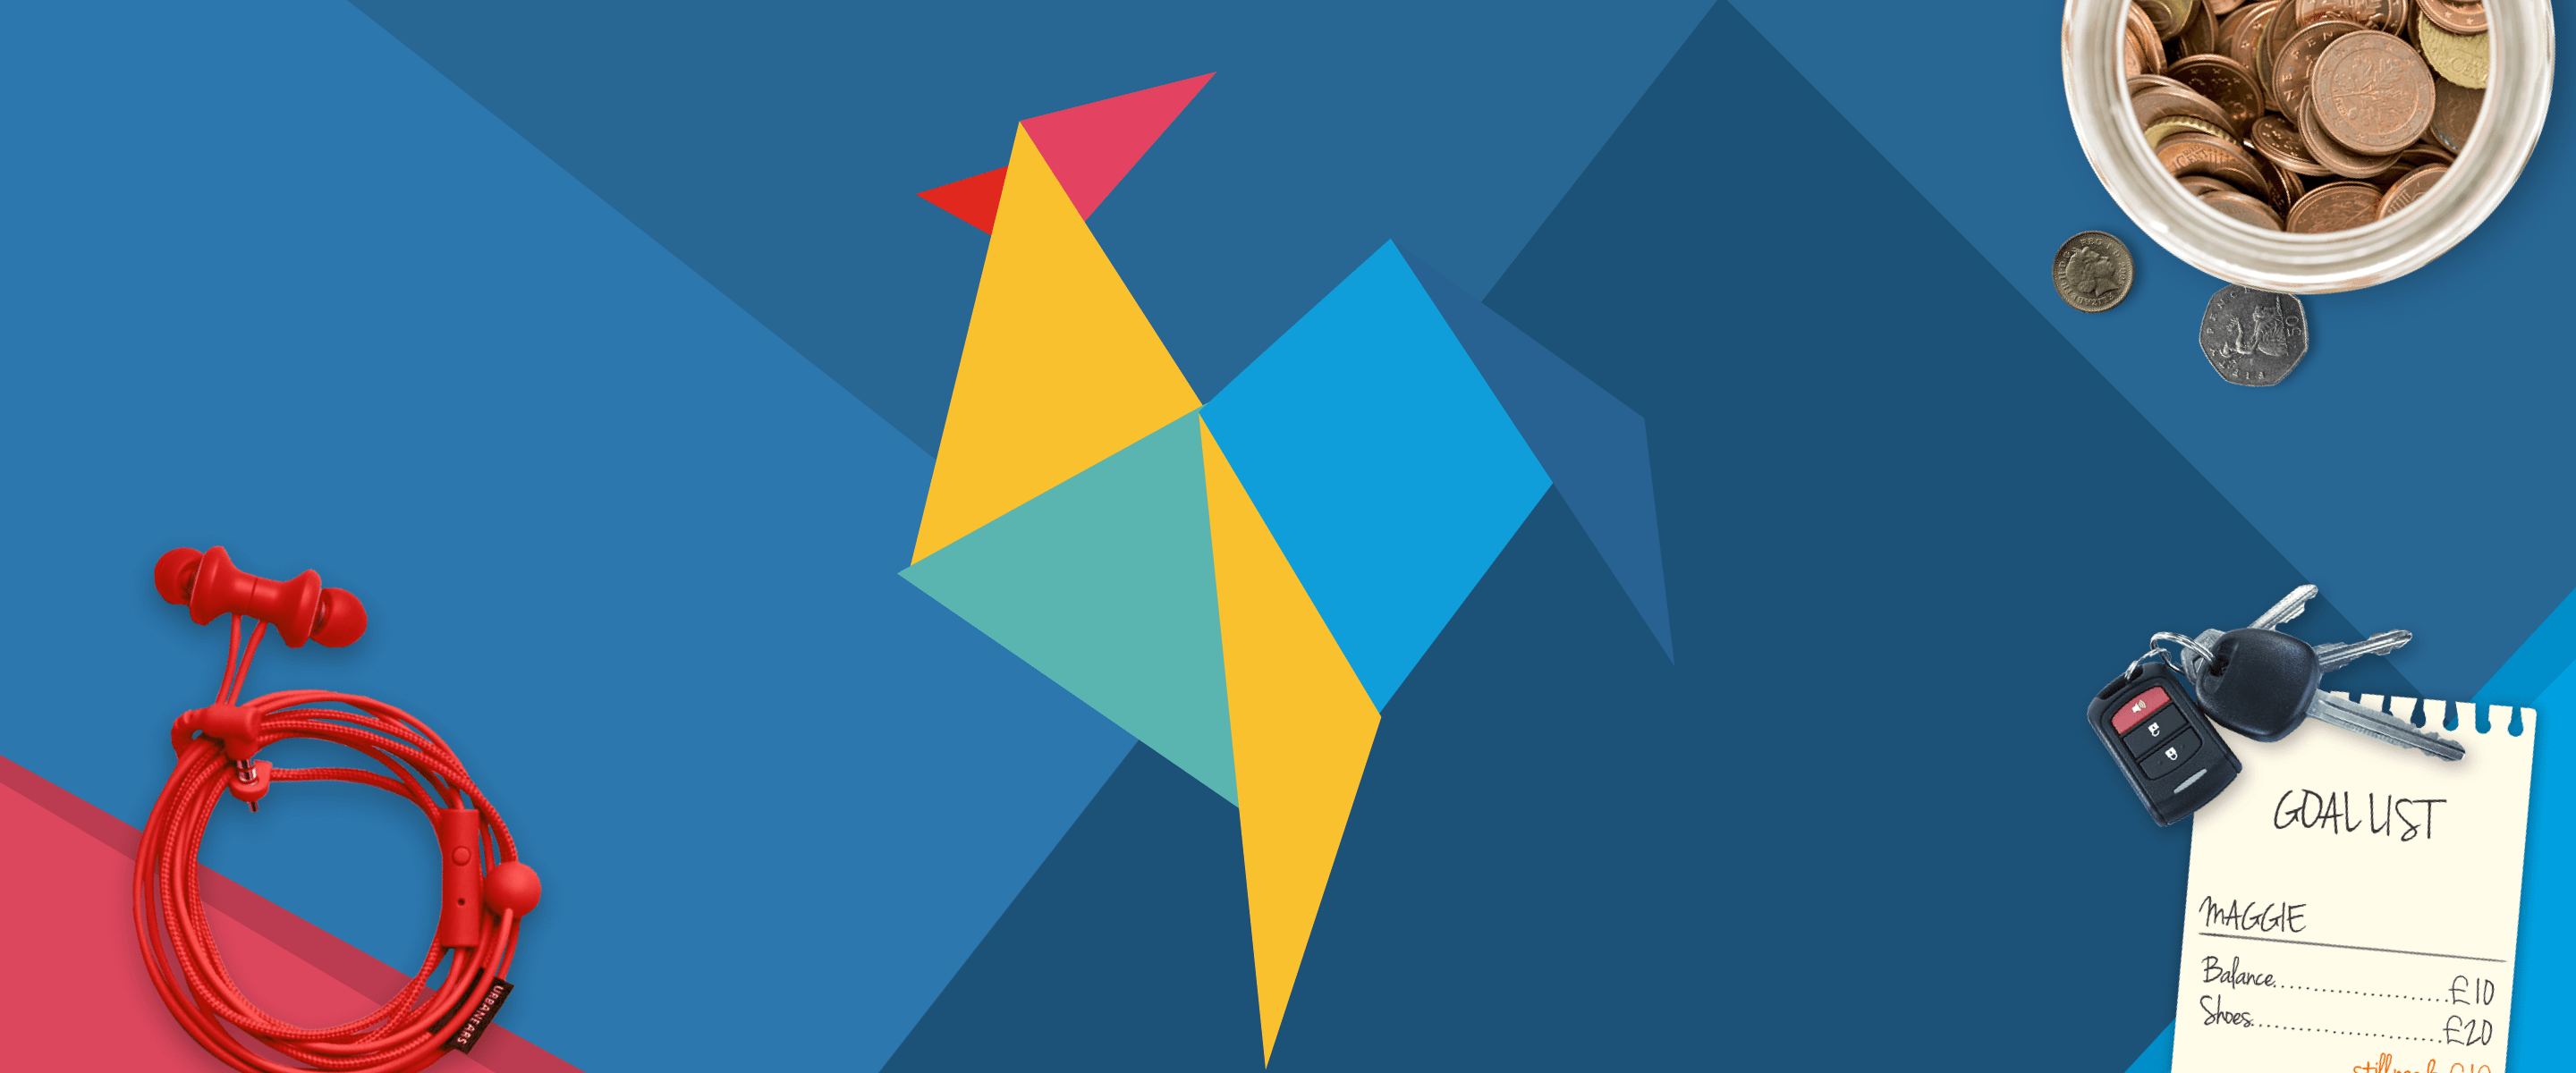 RoosterMoney logo on an origami dark blue background, with origami decorating the corners and red headphones, a pot of coins and a list of goals overlaid